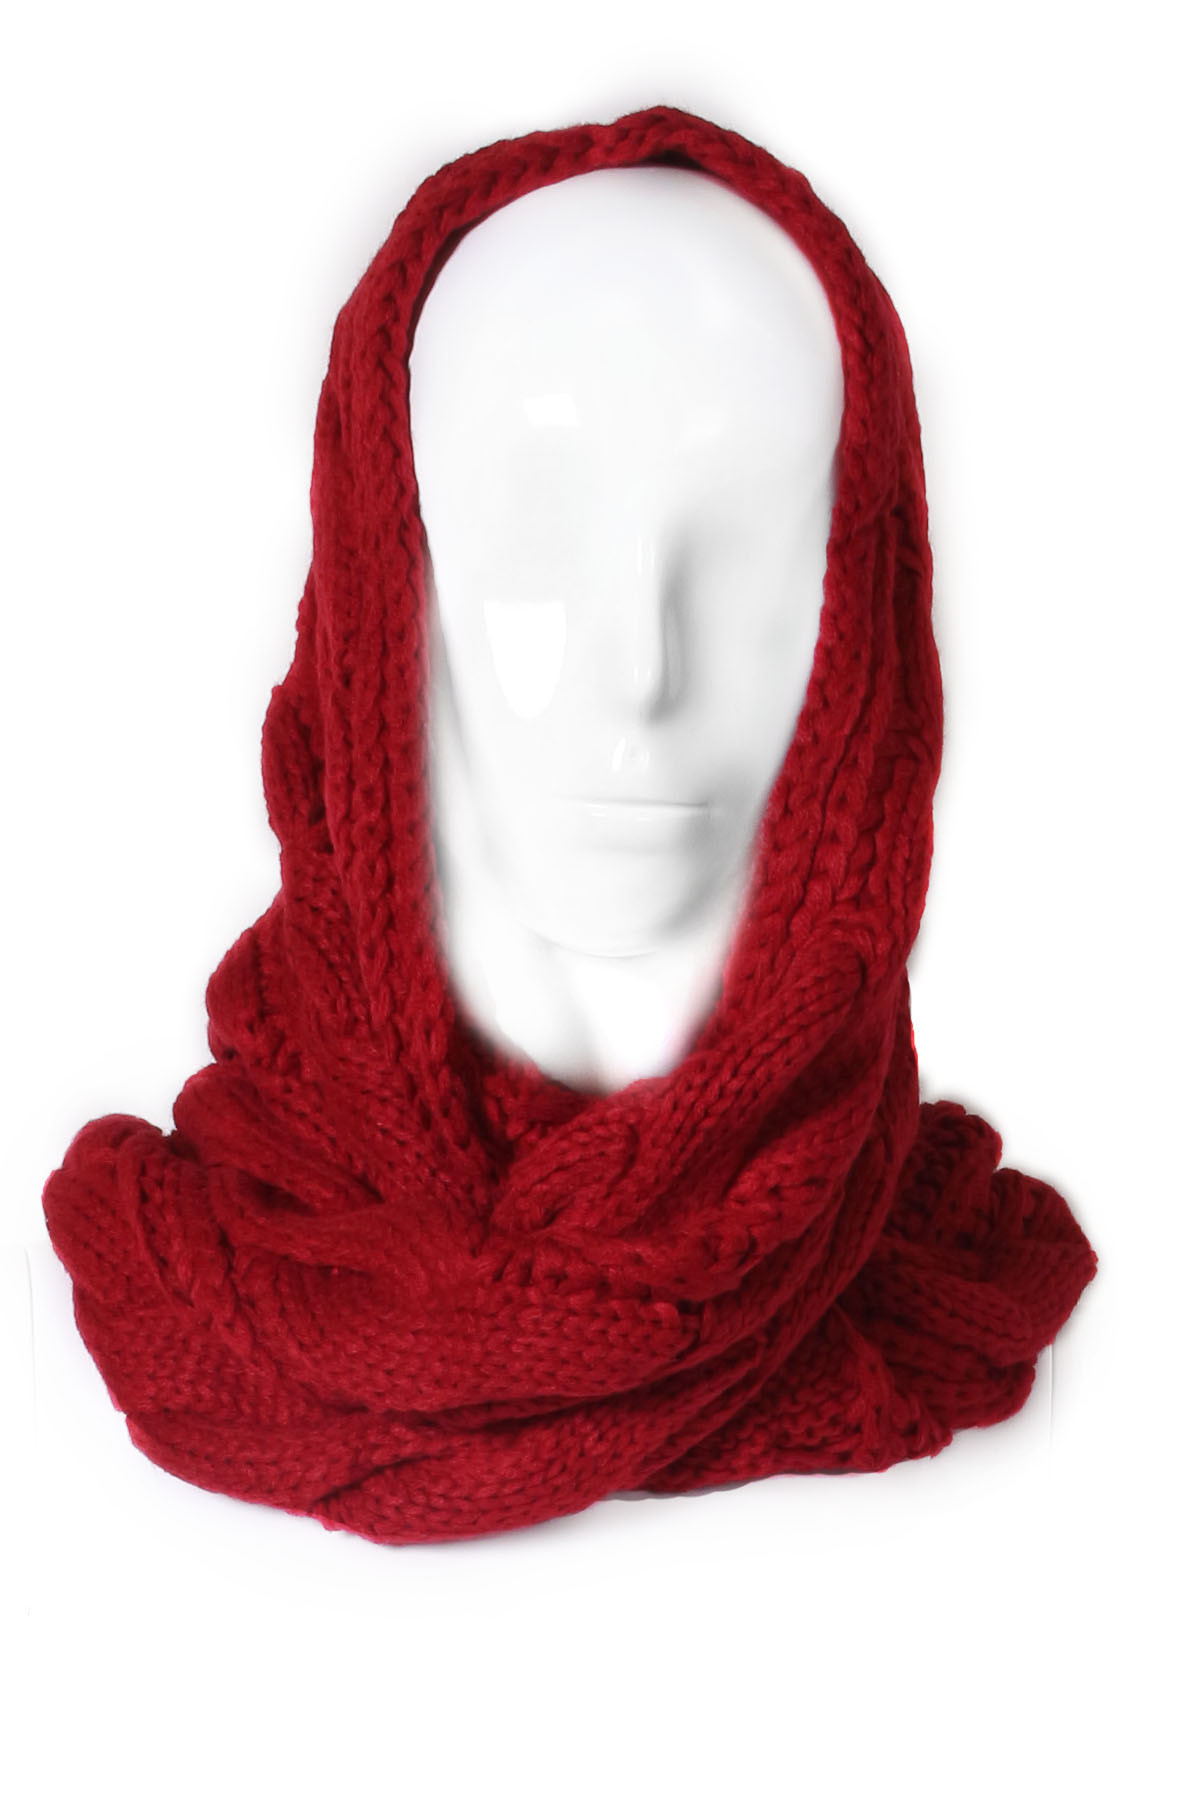 Inspirational Cable Knit Infinity Scarf Scarves Cable Knit Scarf Of Delightful 48 Ideas Cable Knit Scarf